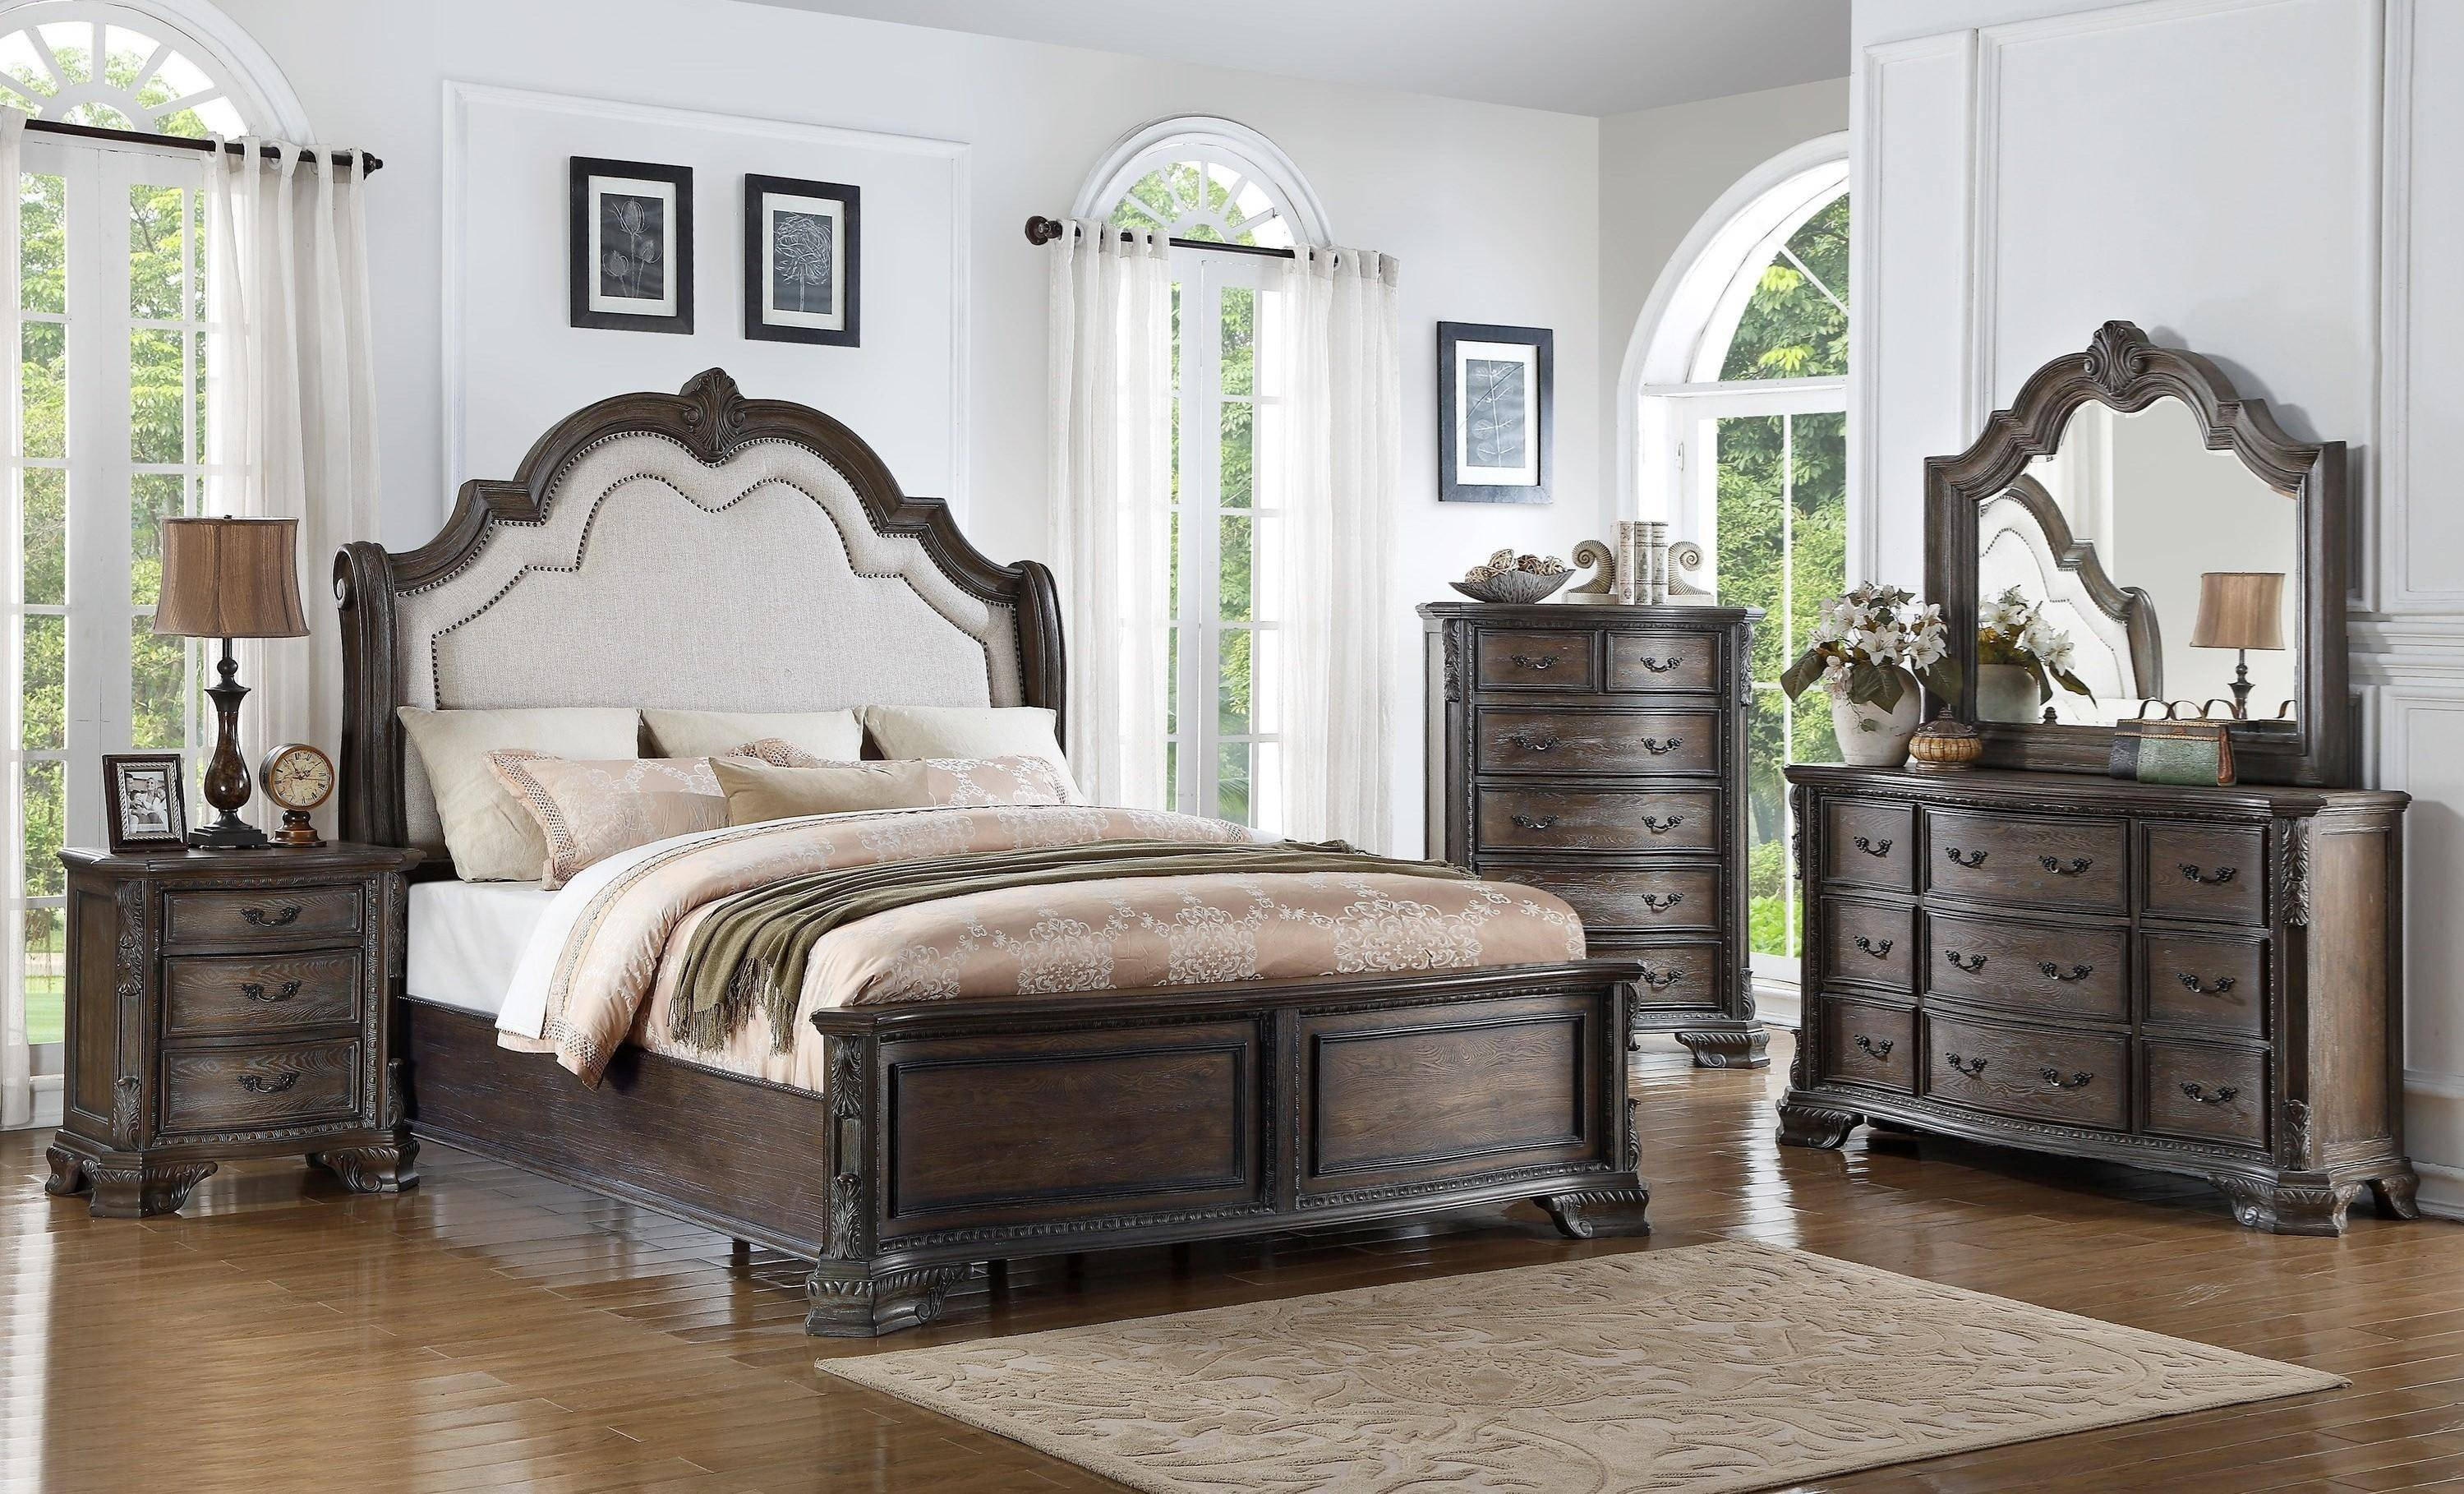 Solid Wood Bedroom Set Awesome Crown Mark B1120 Sheffield Queen Panel Bed In Gray Fabric